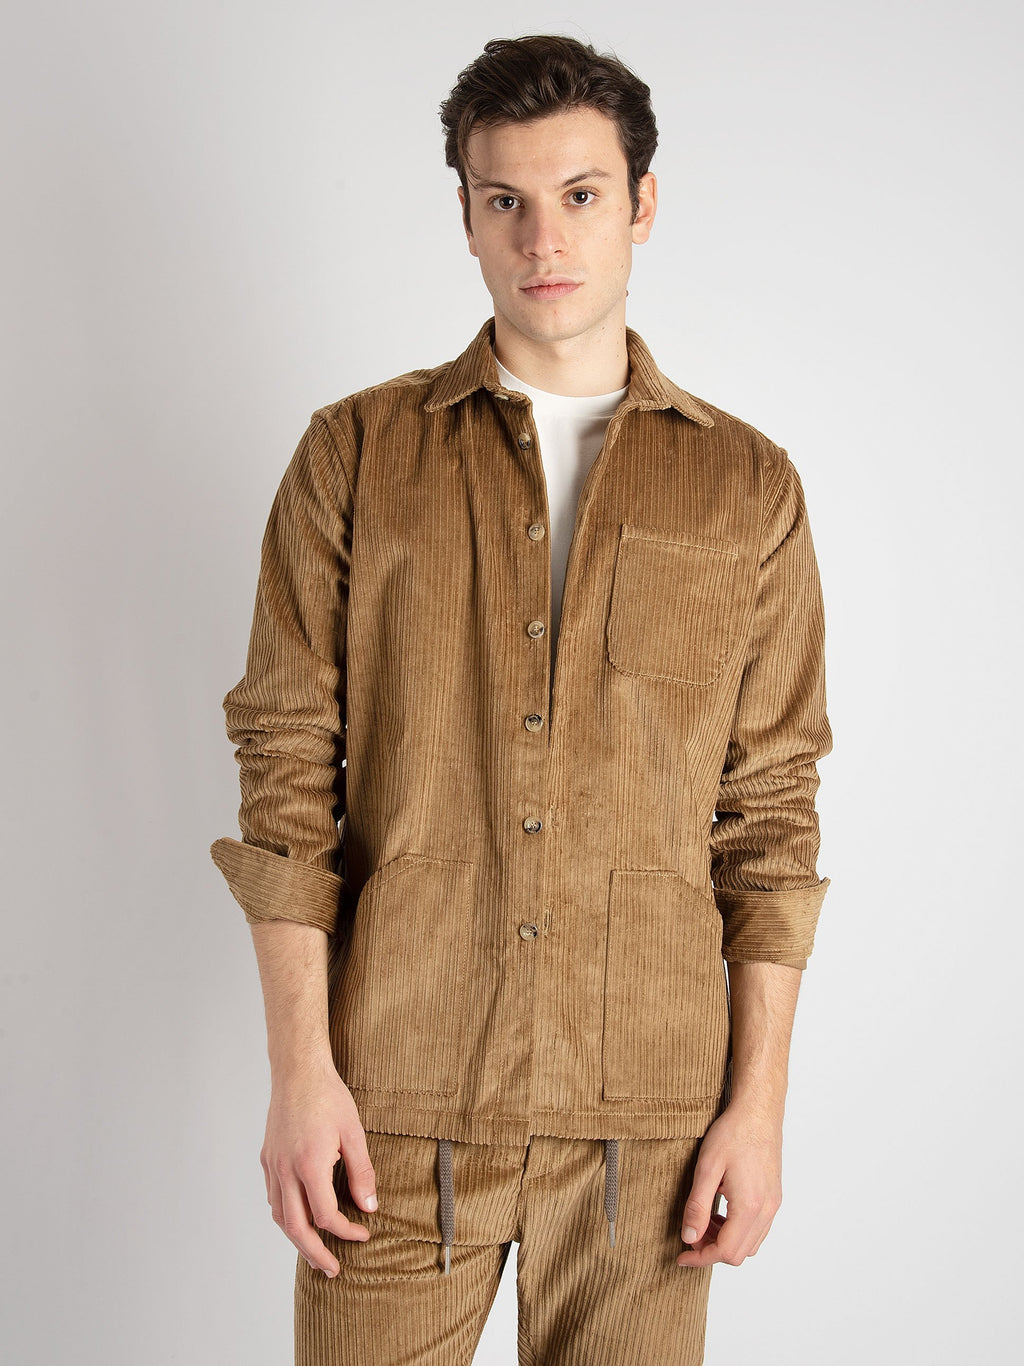 Over Shirt 'Monti' - Cognac